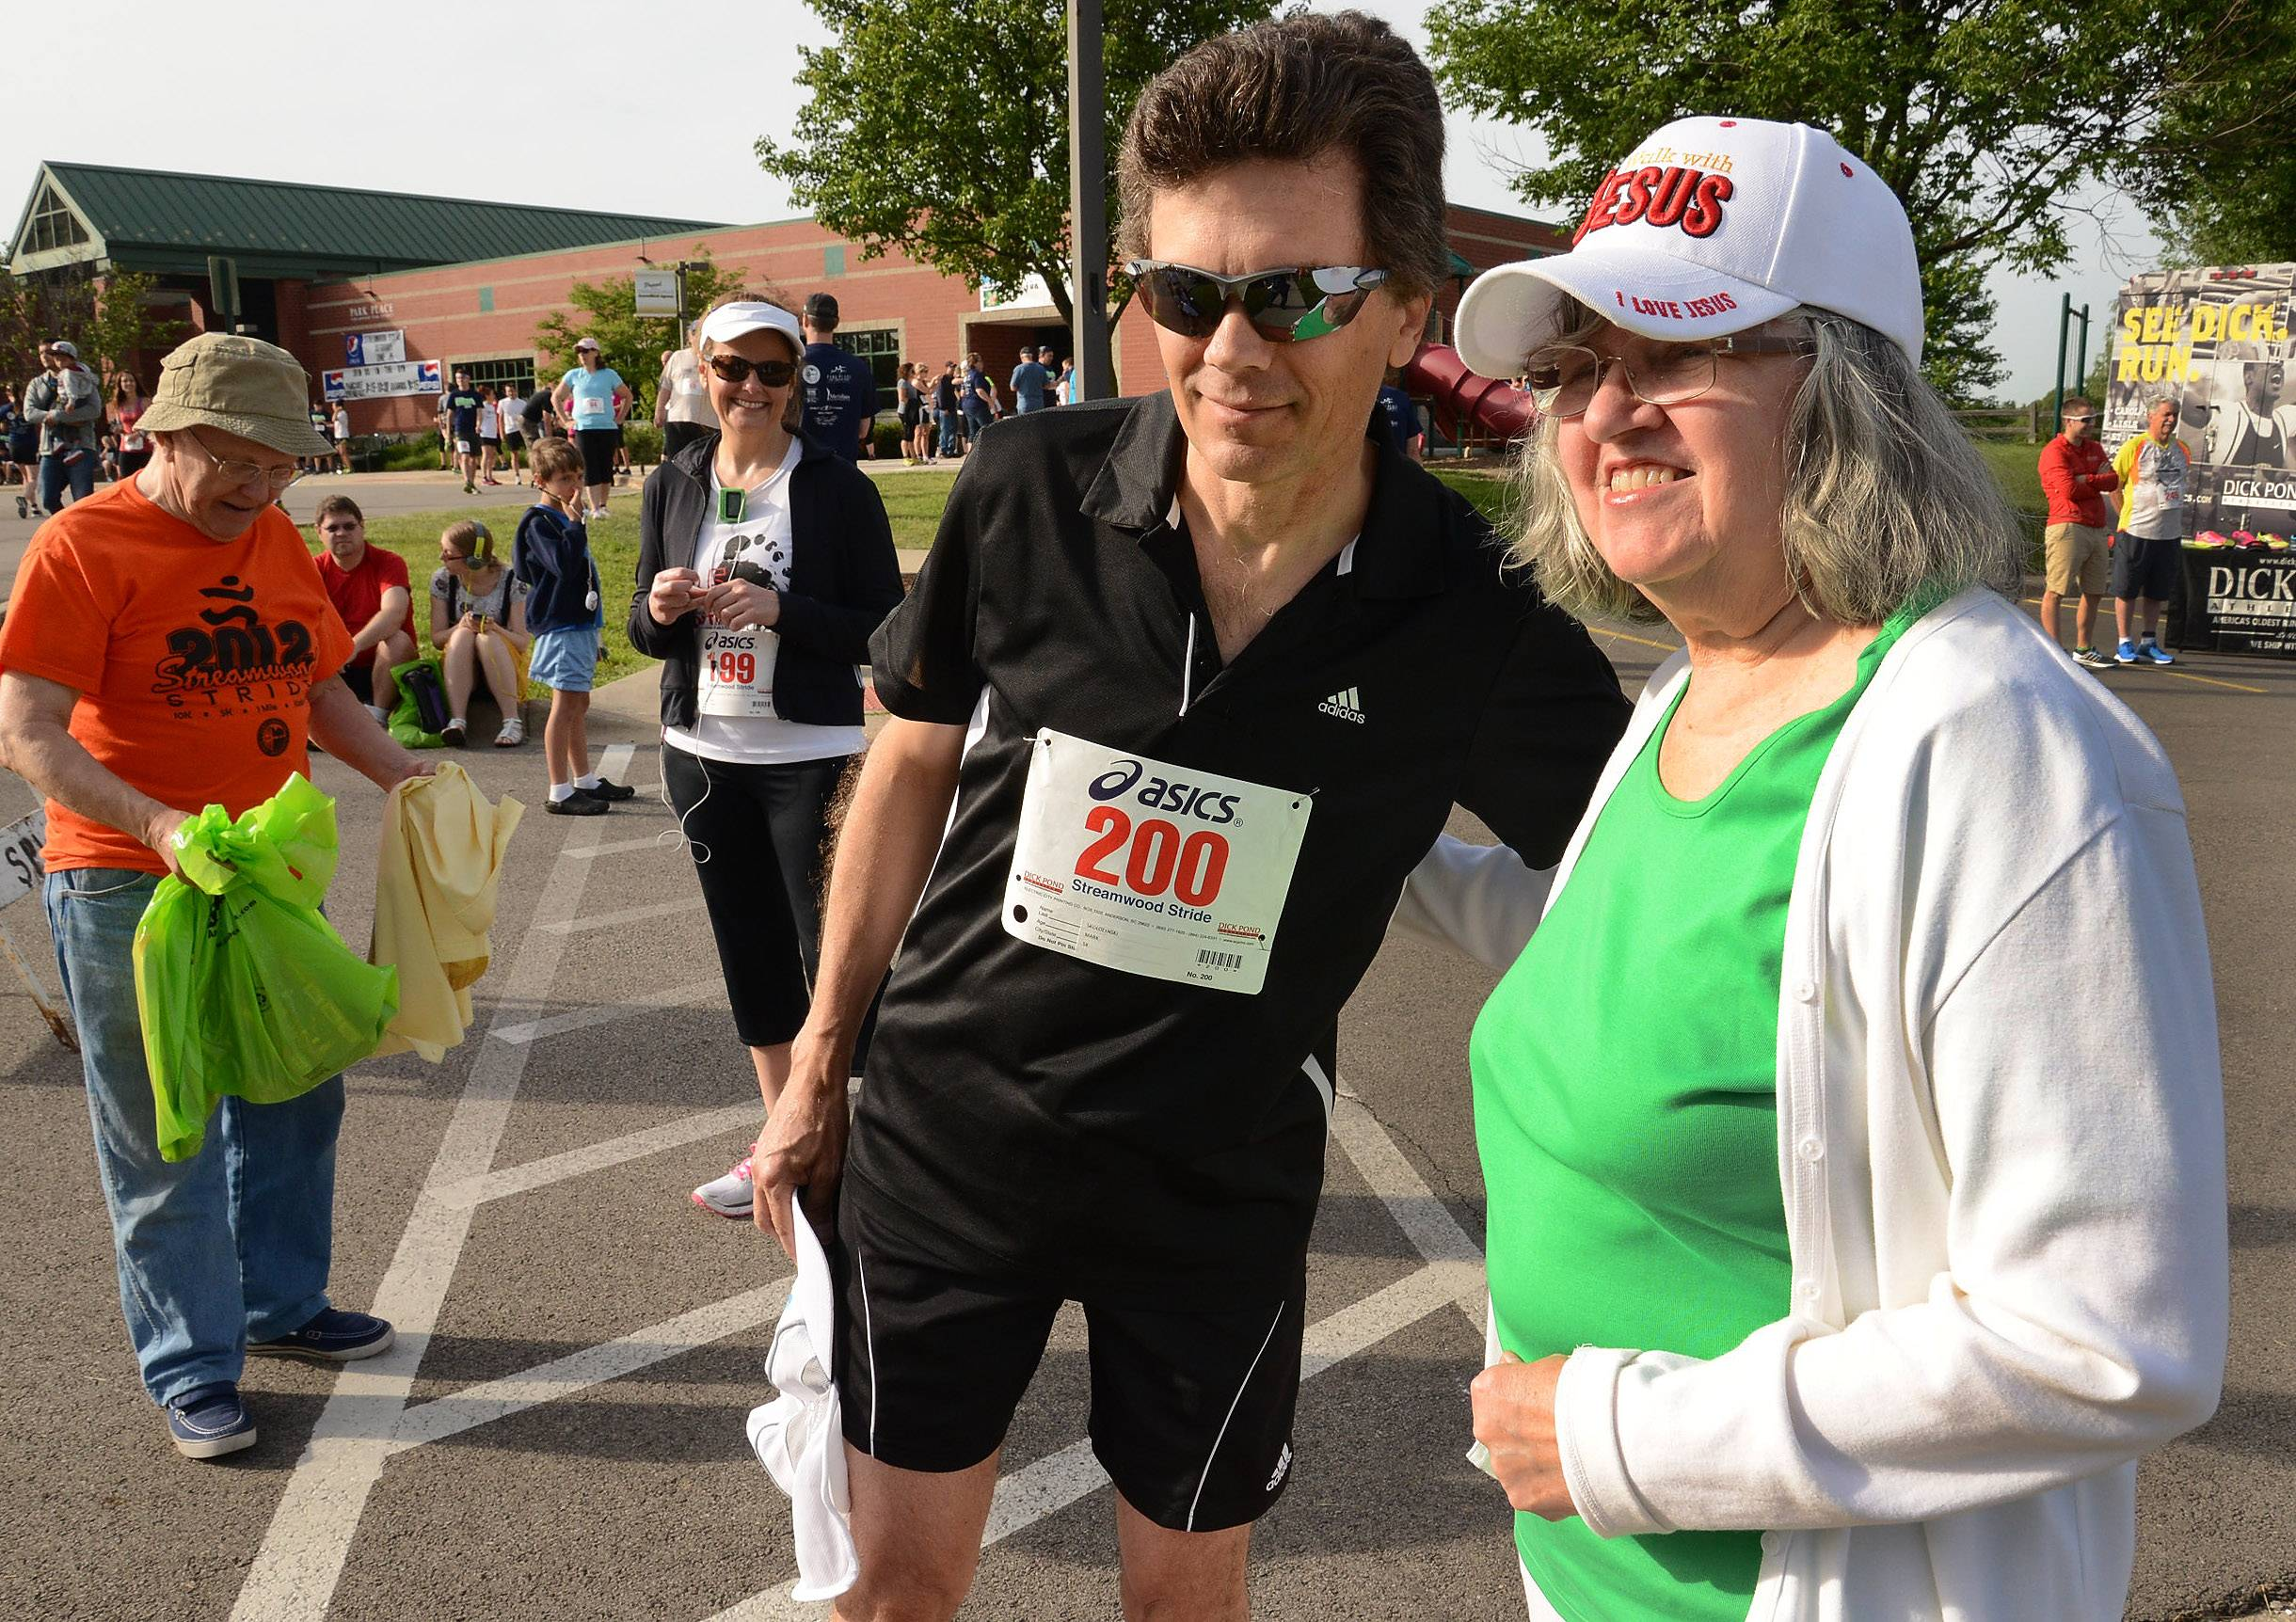 Mark Skolozynski of Elgin gets some encouragement from his mother, Carol Skolozynski of Streamwood, before the Streamwood Stride 5K/10K/Fun Run Saturday morning at the Park Place Family Recreation Center. Carol Skolozynski has been running for fifteen years and won the gold last year at the age of 72. This year a bad back is keeping her out of the event.